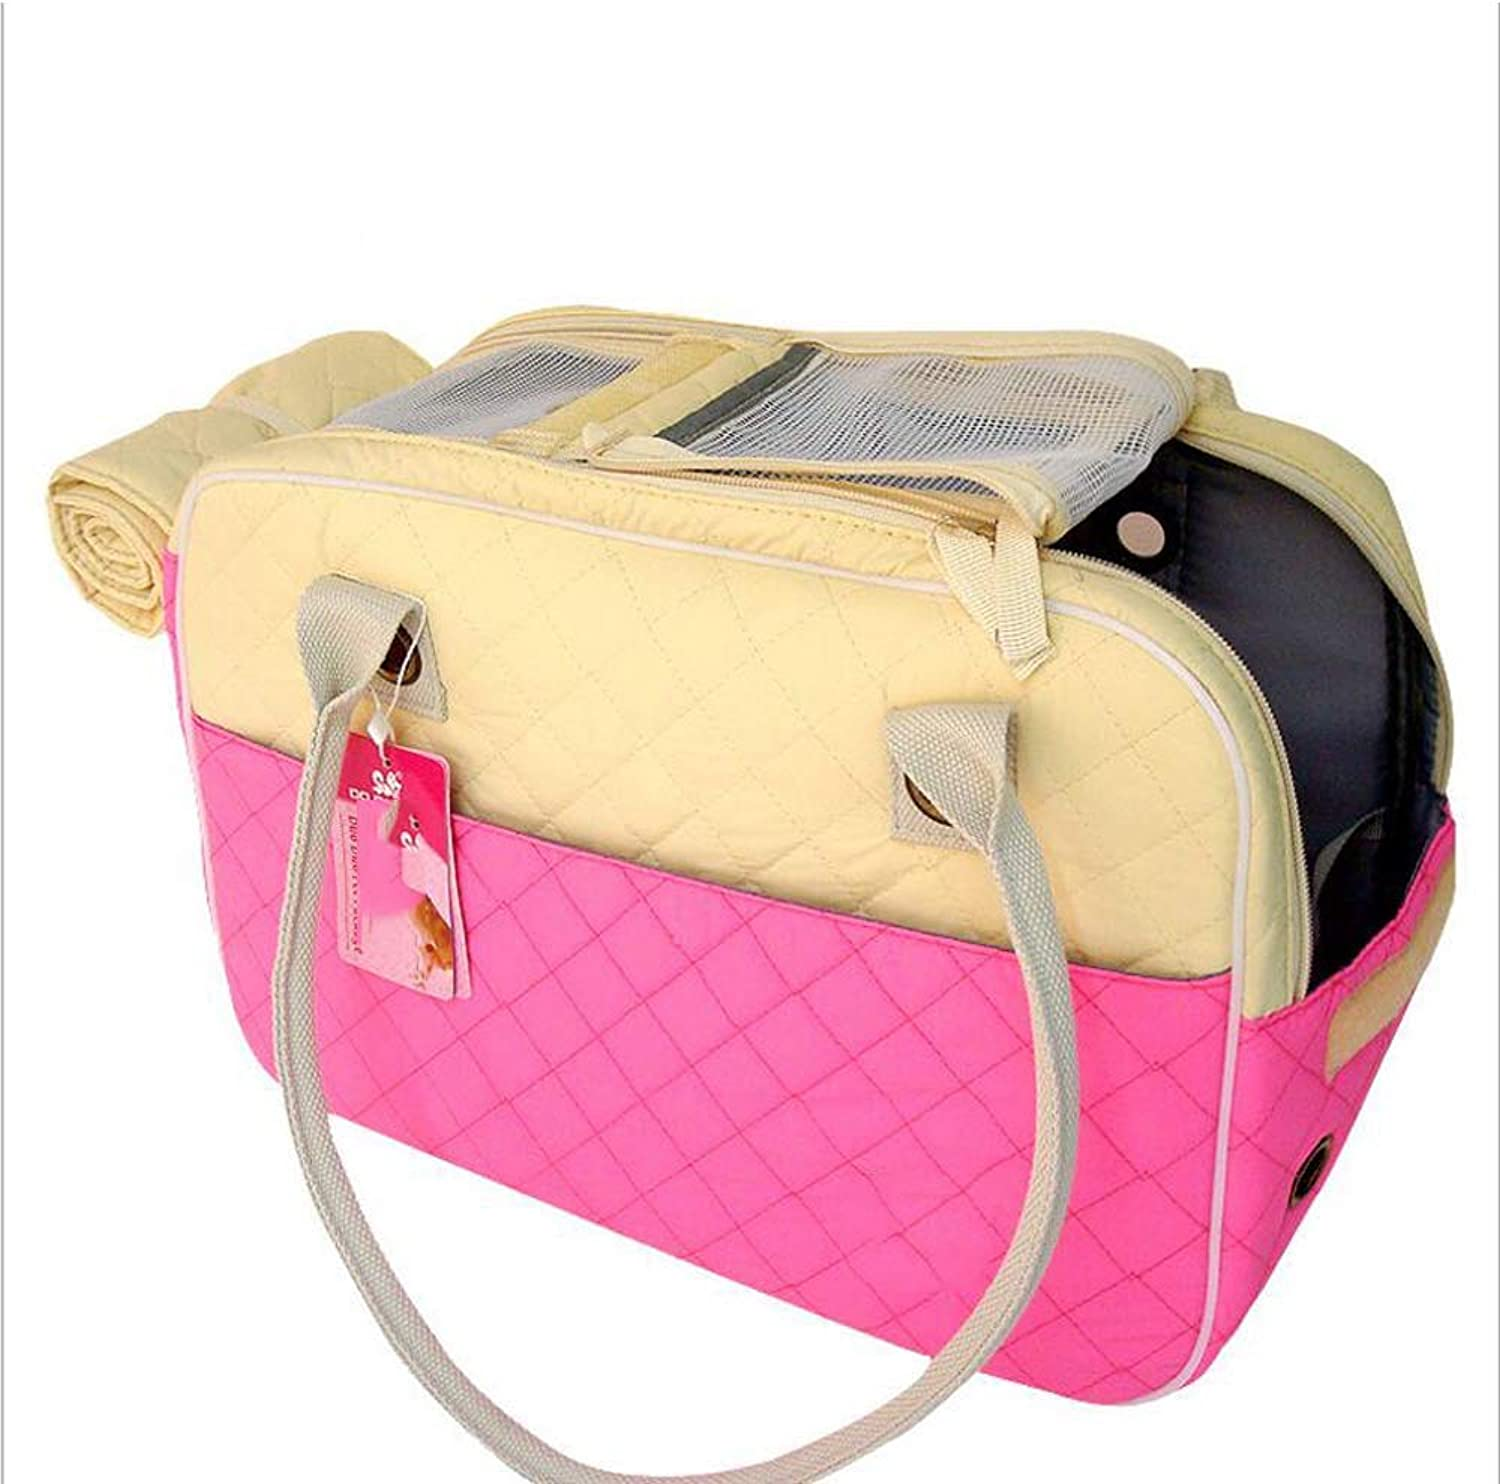 Pet Carrier Seat Cotton Pet Handbag, Breathable Portable Pet Backpack, Cat, Dog, Pet,M Pet Carrier Crate